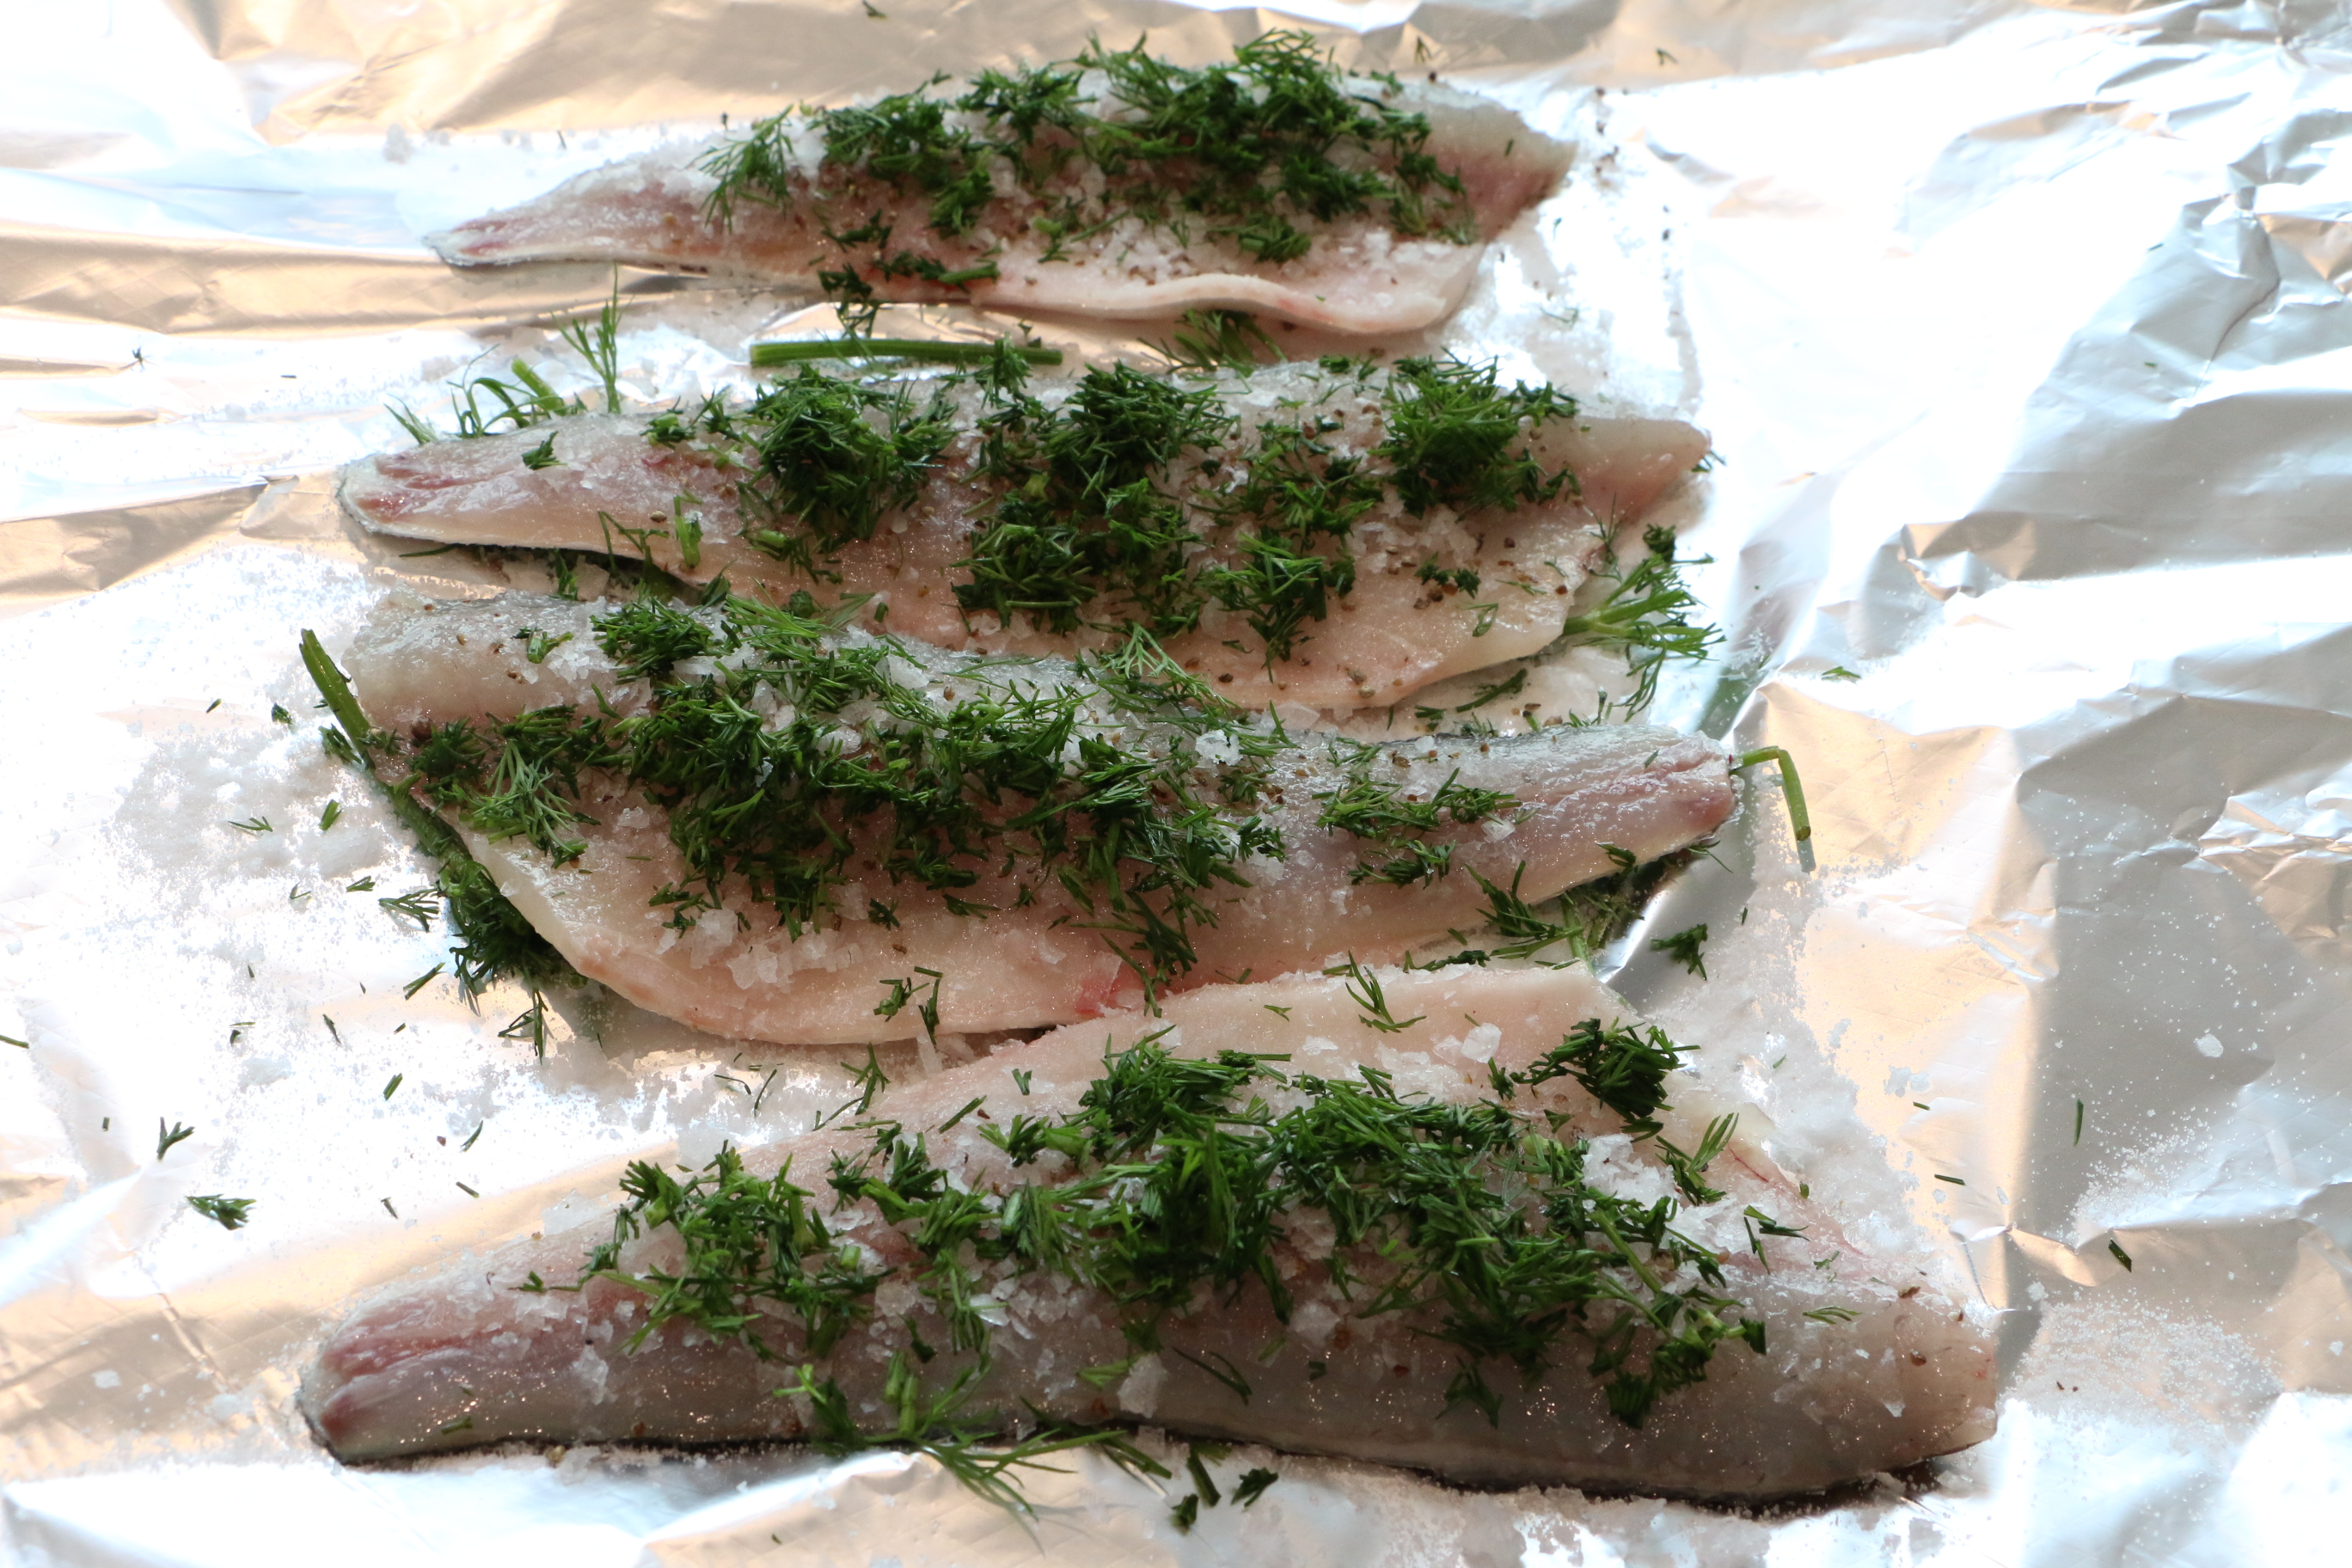 Gravad sea bass, ready to be wrapped and refrigerated for 24 hours